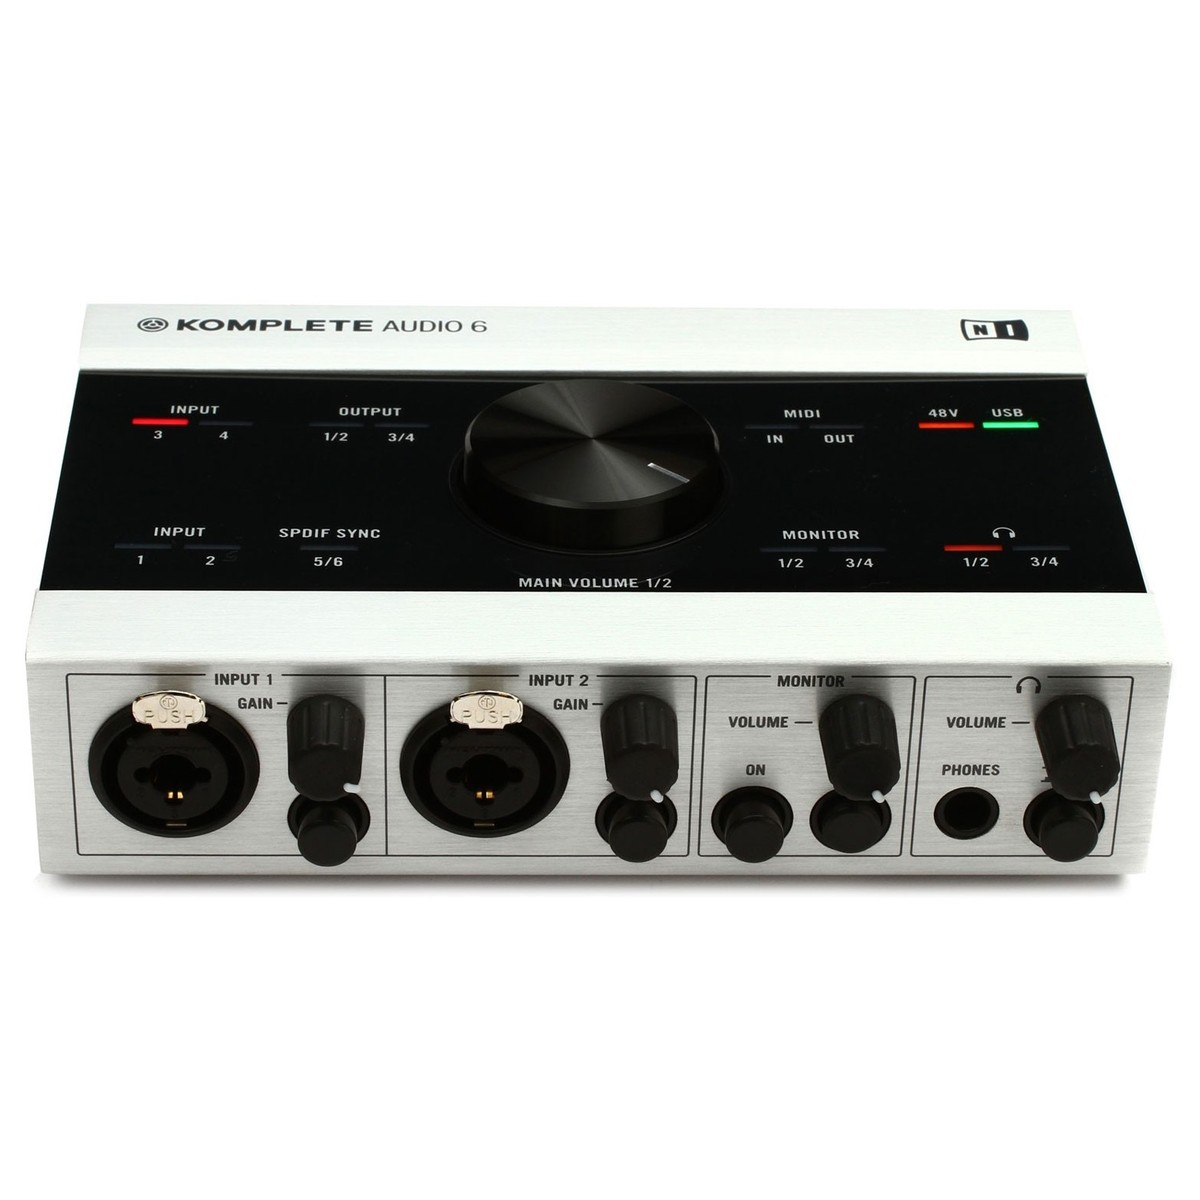 native instruments komplete audio 6 usb audio interface at. Black Bedroom Furniture Sets. Home Design Ideas